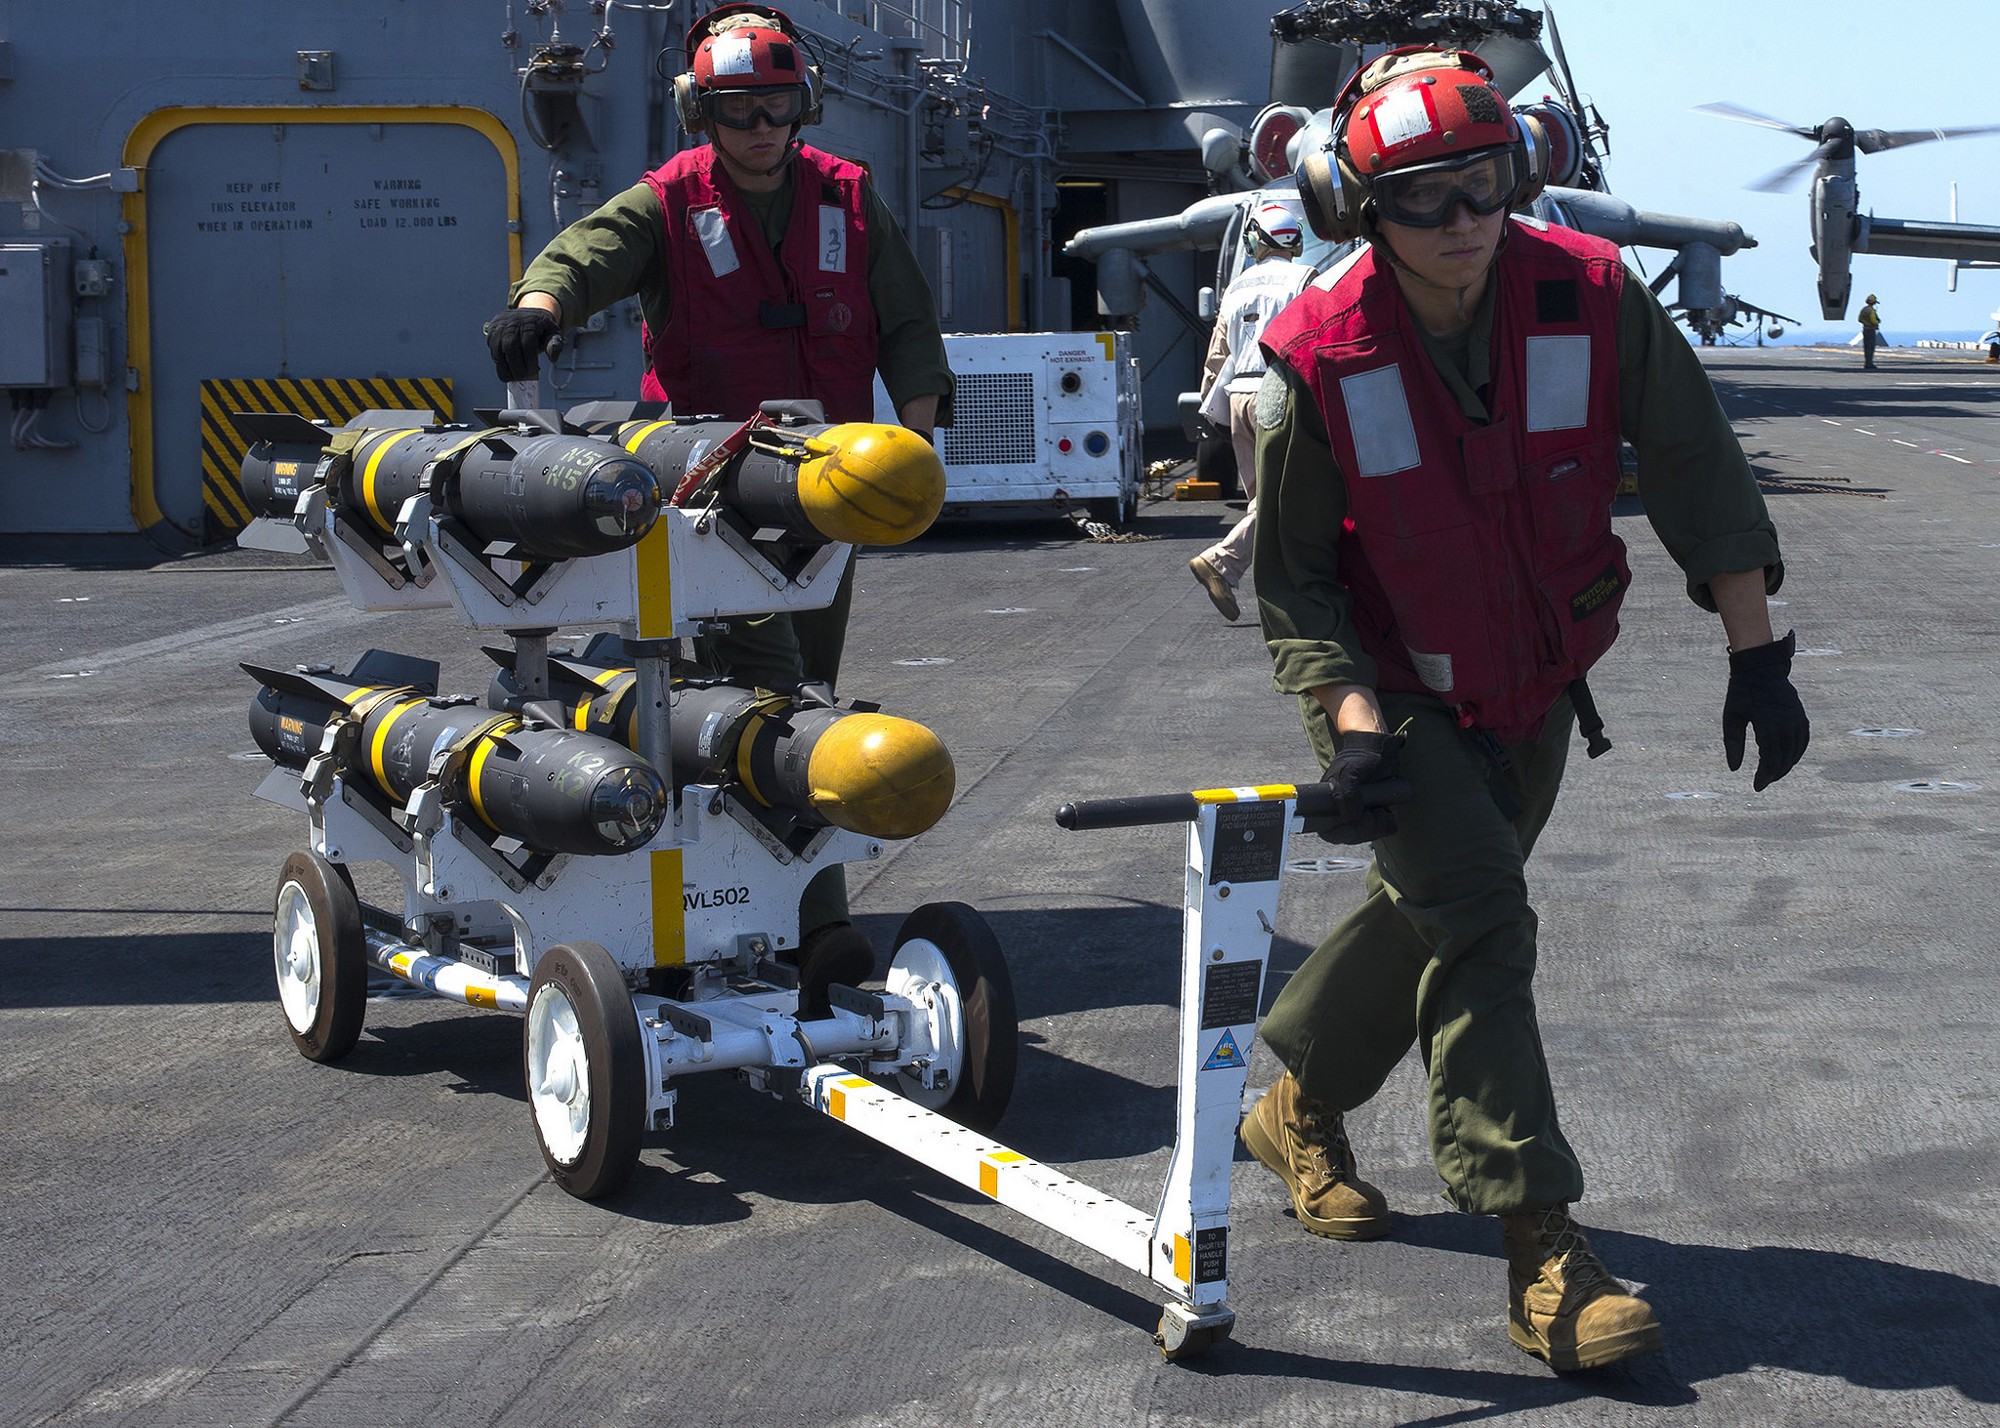 US Marines Launches Prohibited Thermobaric Missiles in Libya